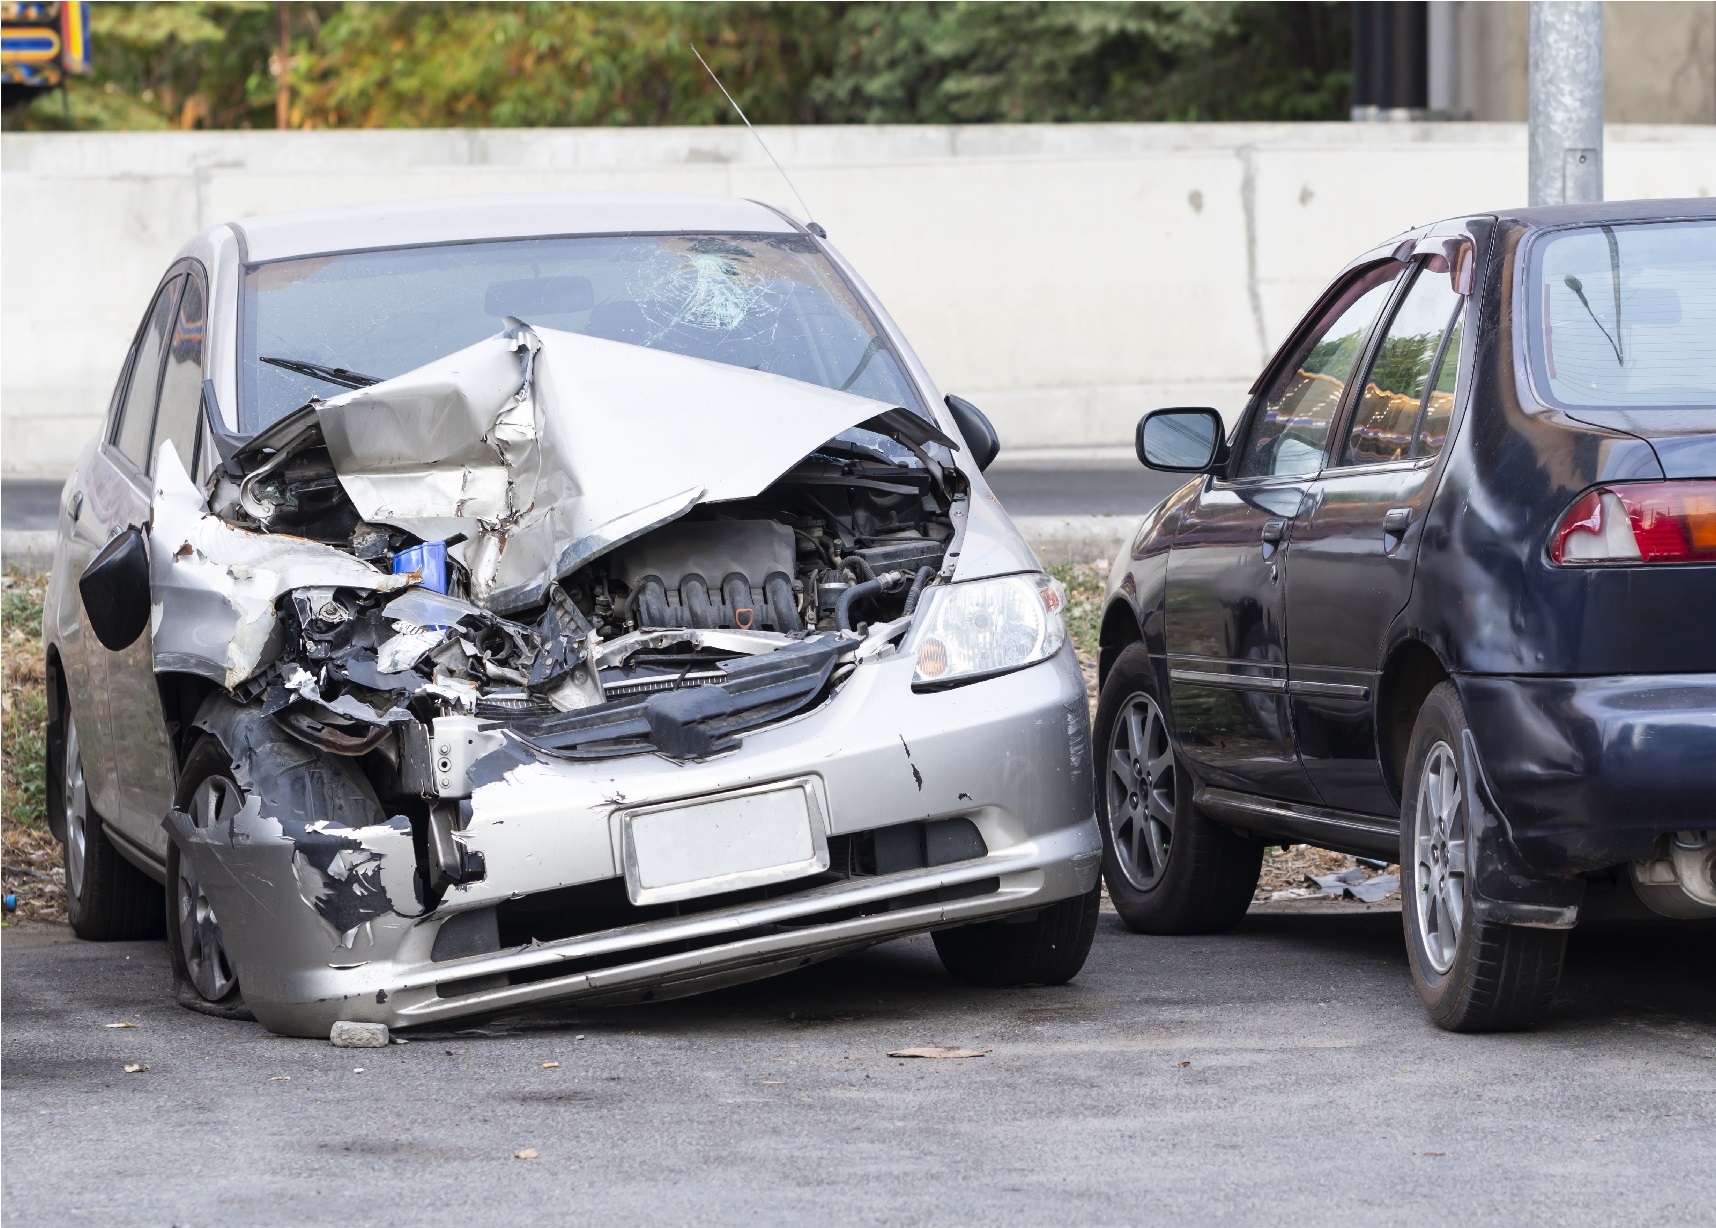 Types of Injuries Suffered in Car and Truck Accidents